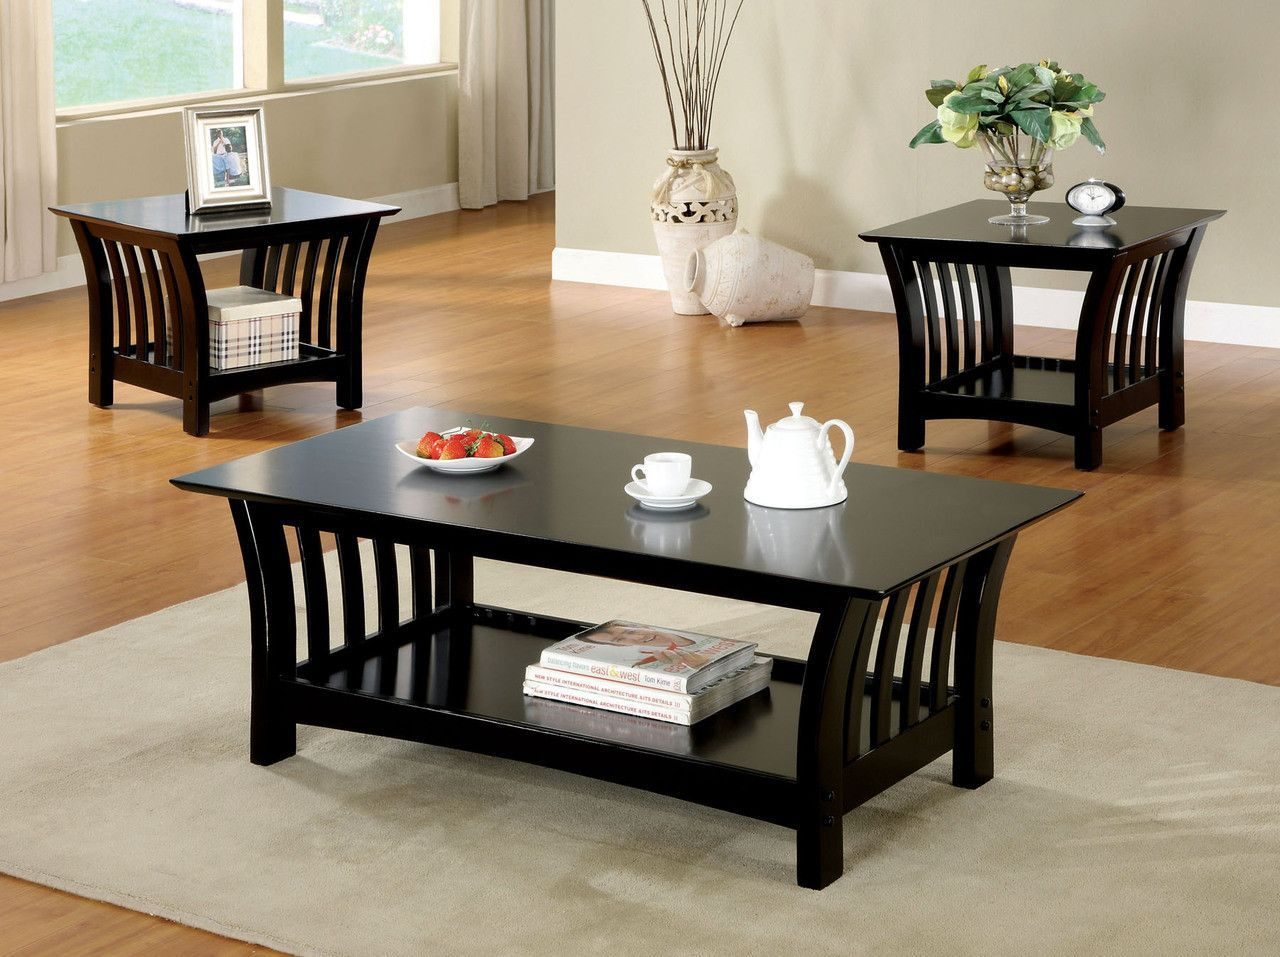 Cm41463Pk Coffee Table With 2 End Tables 3Pc.Set Milford